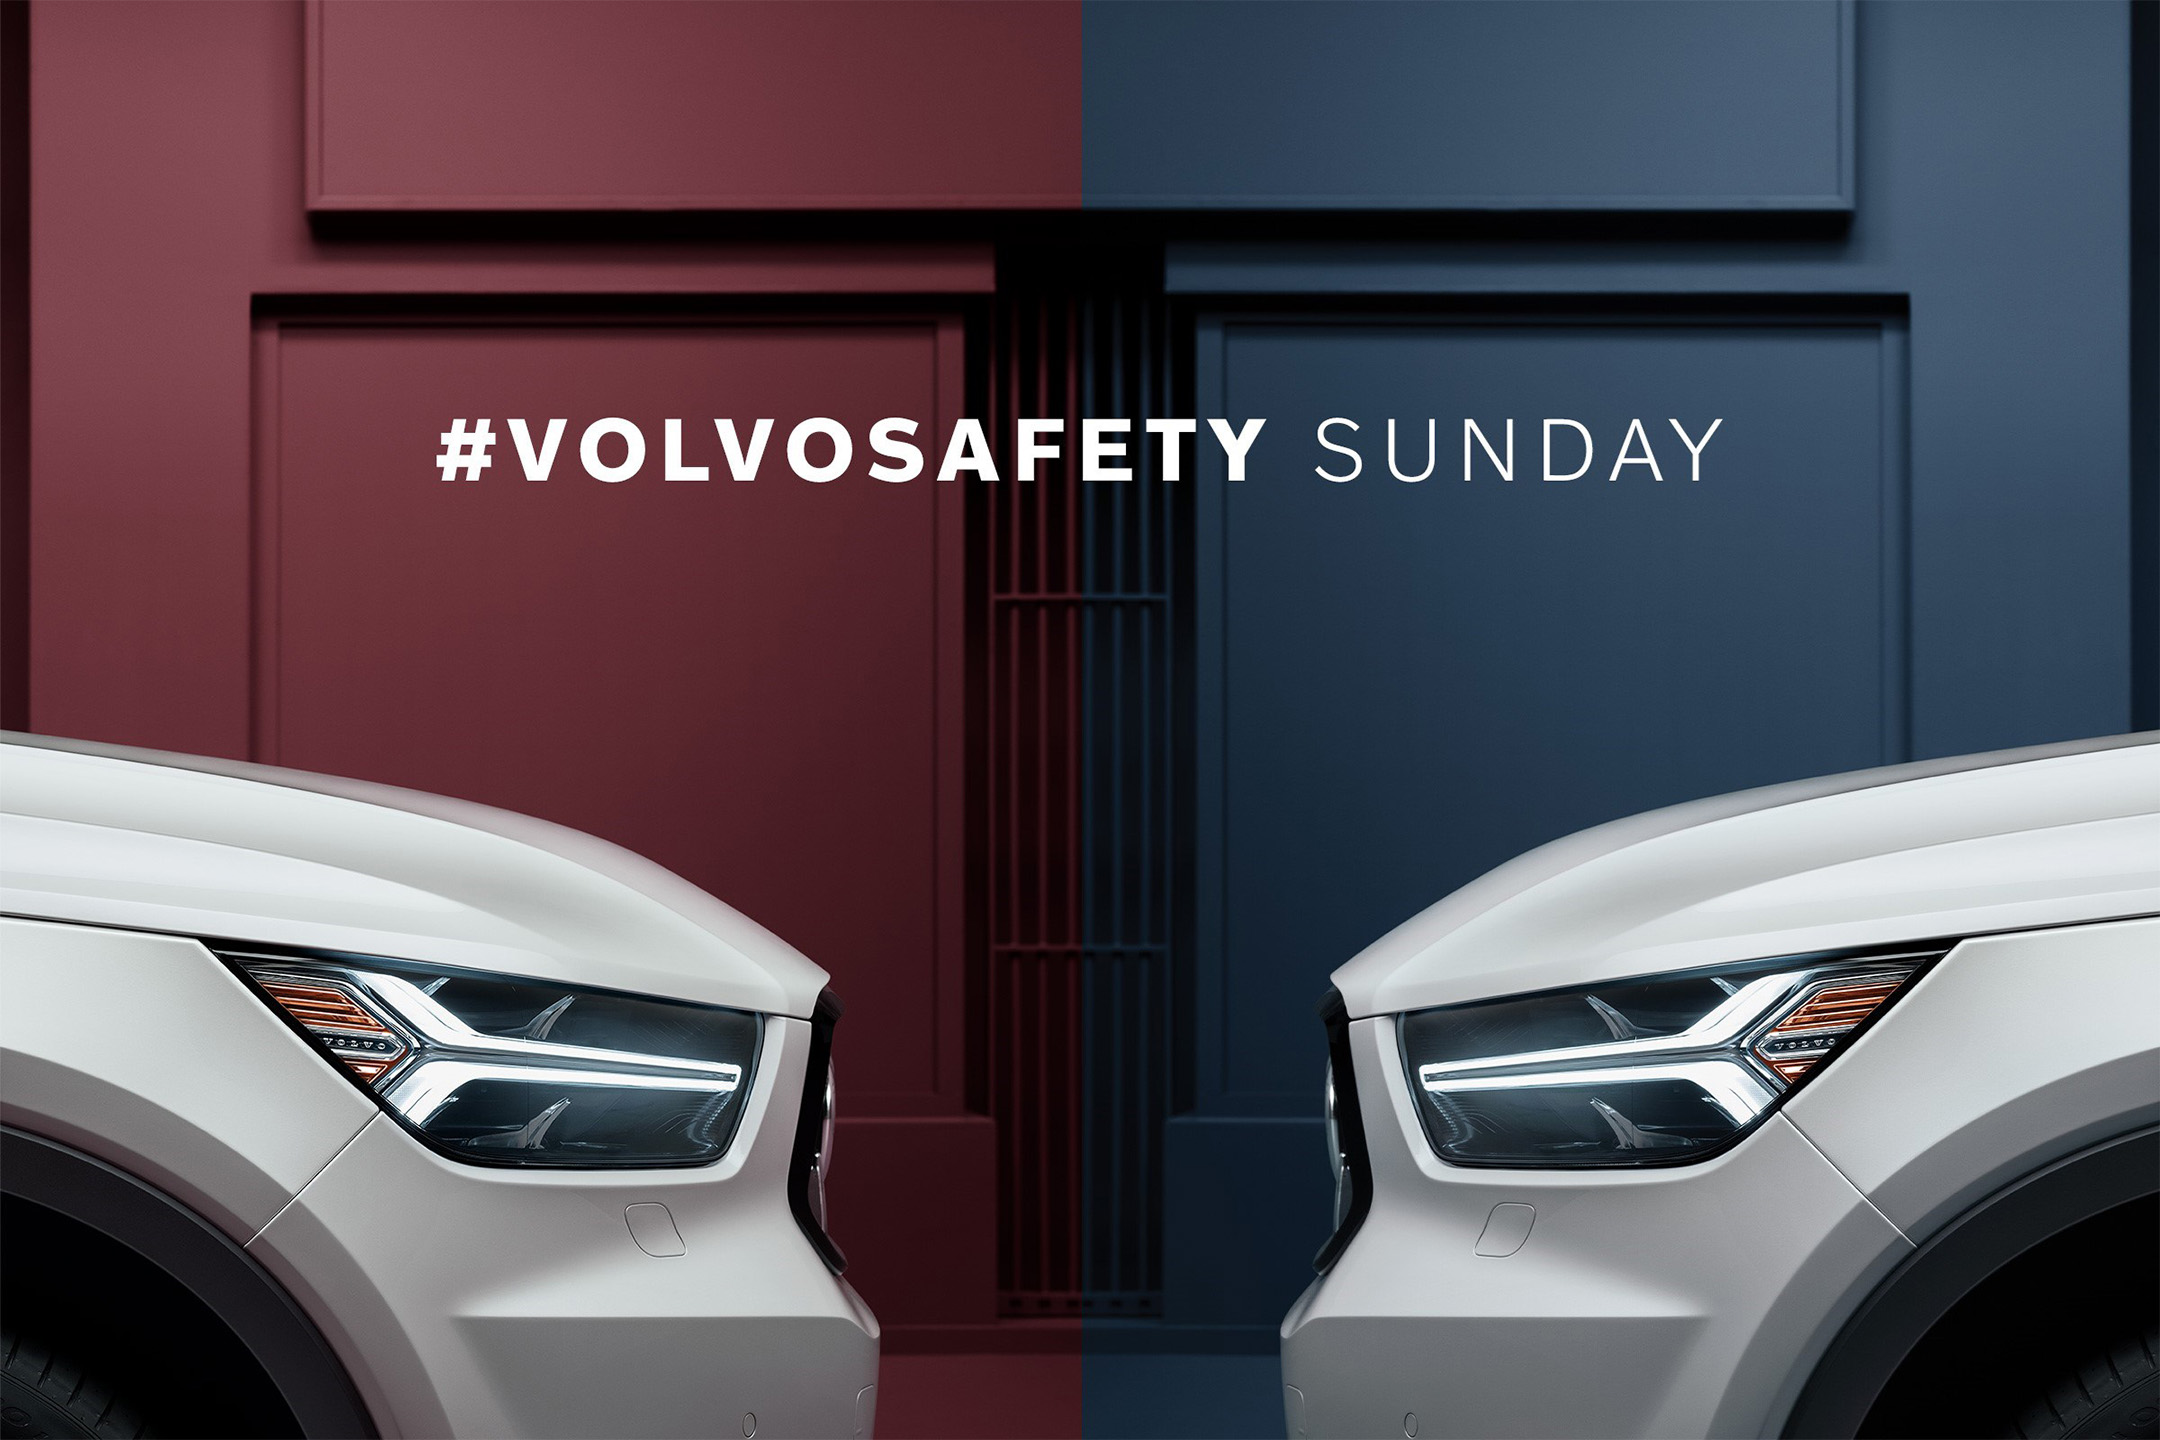 Volvo's Safe Bet on the Super Bowl: $1M in Free Cars if Safety Scored